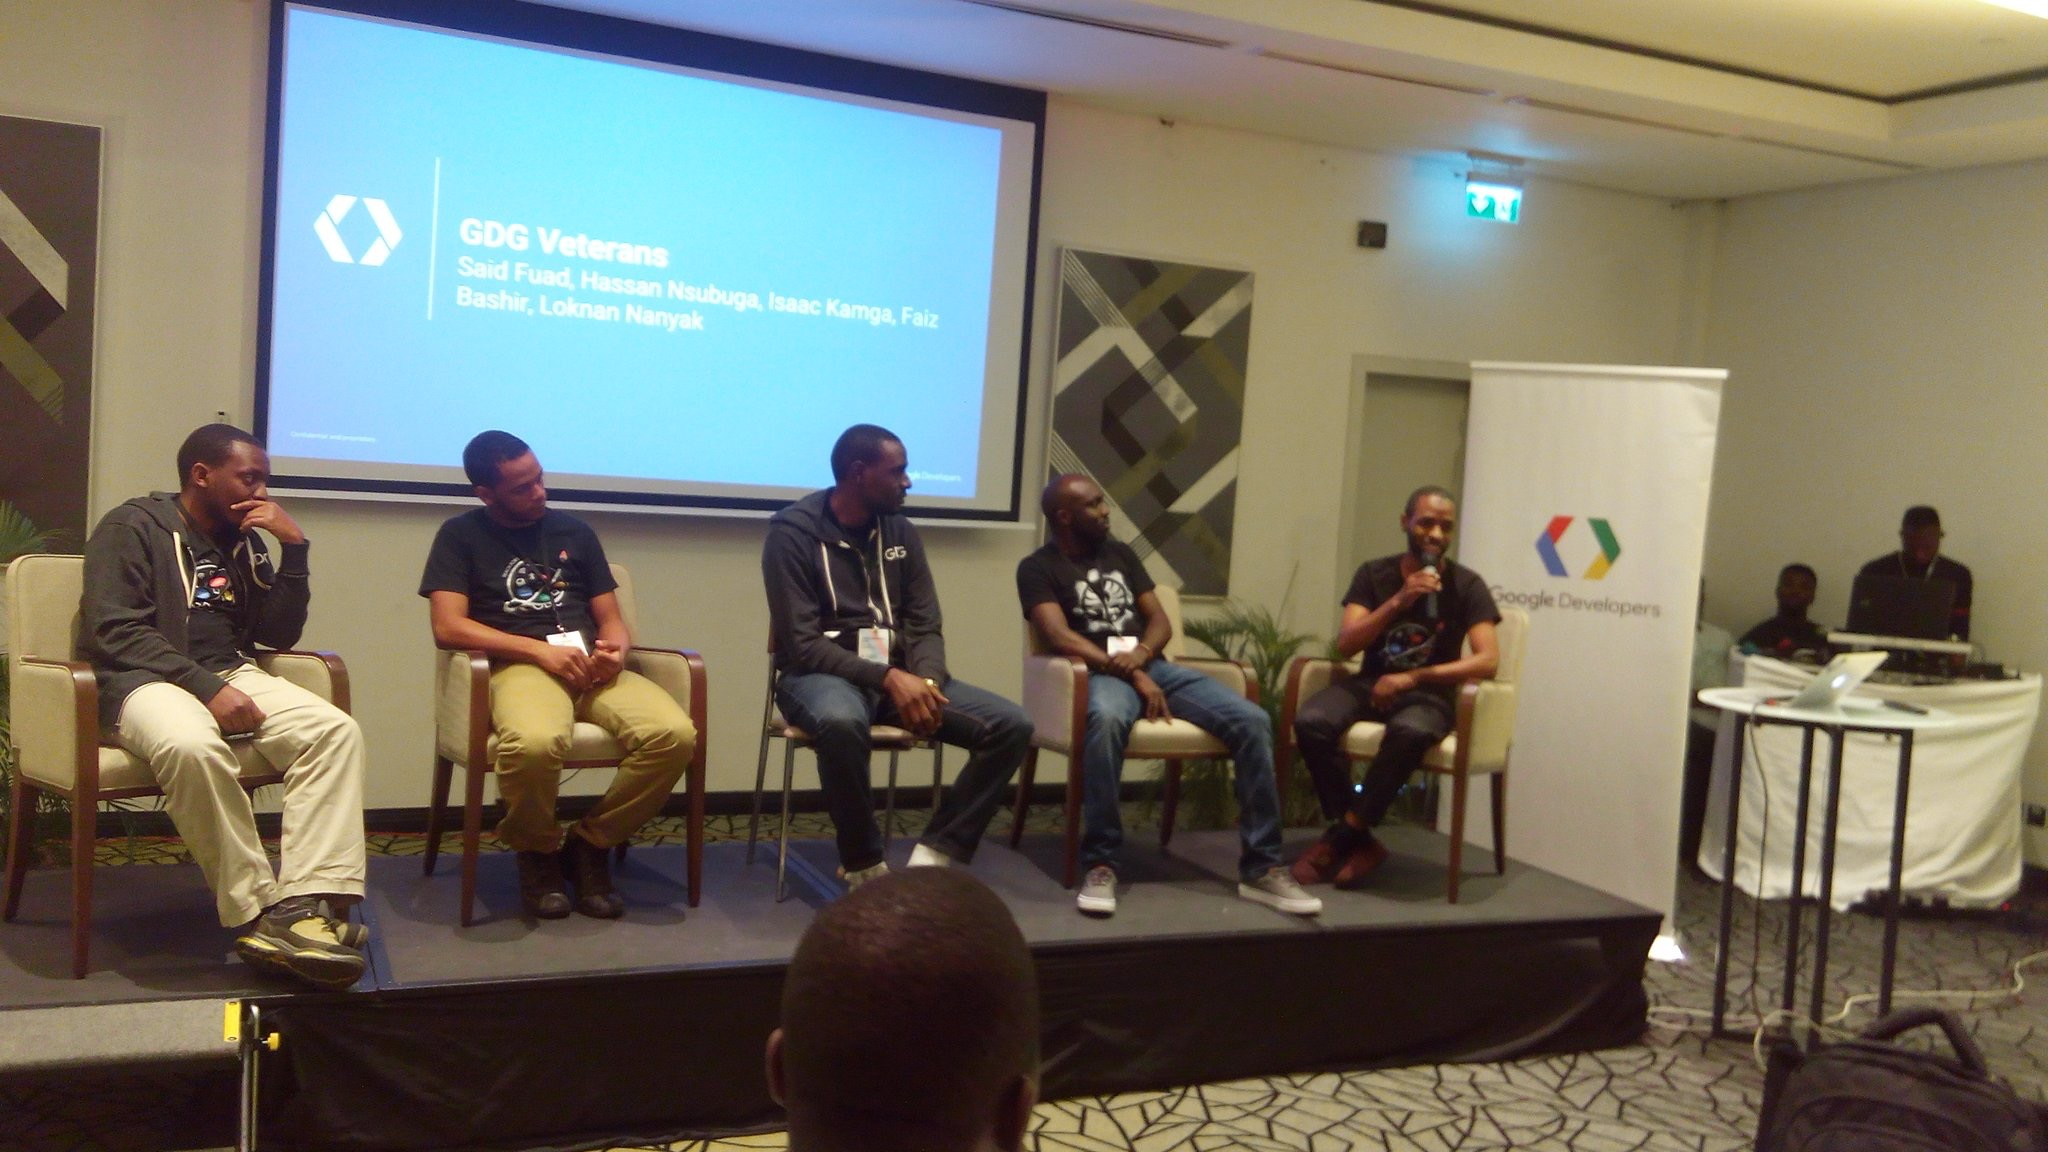 GDG Summit Lagos - FlexiSAF CEO & GDG Veterans on stage